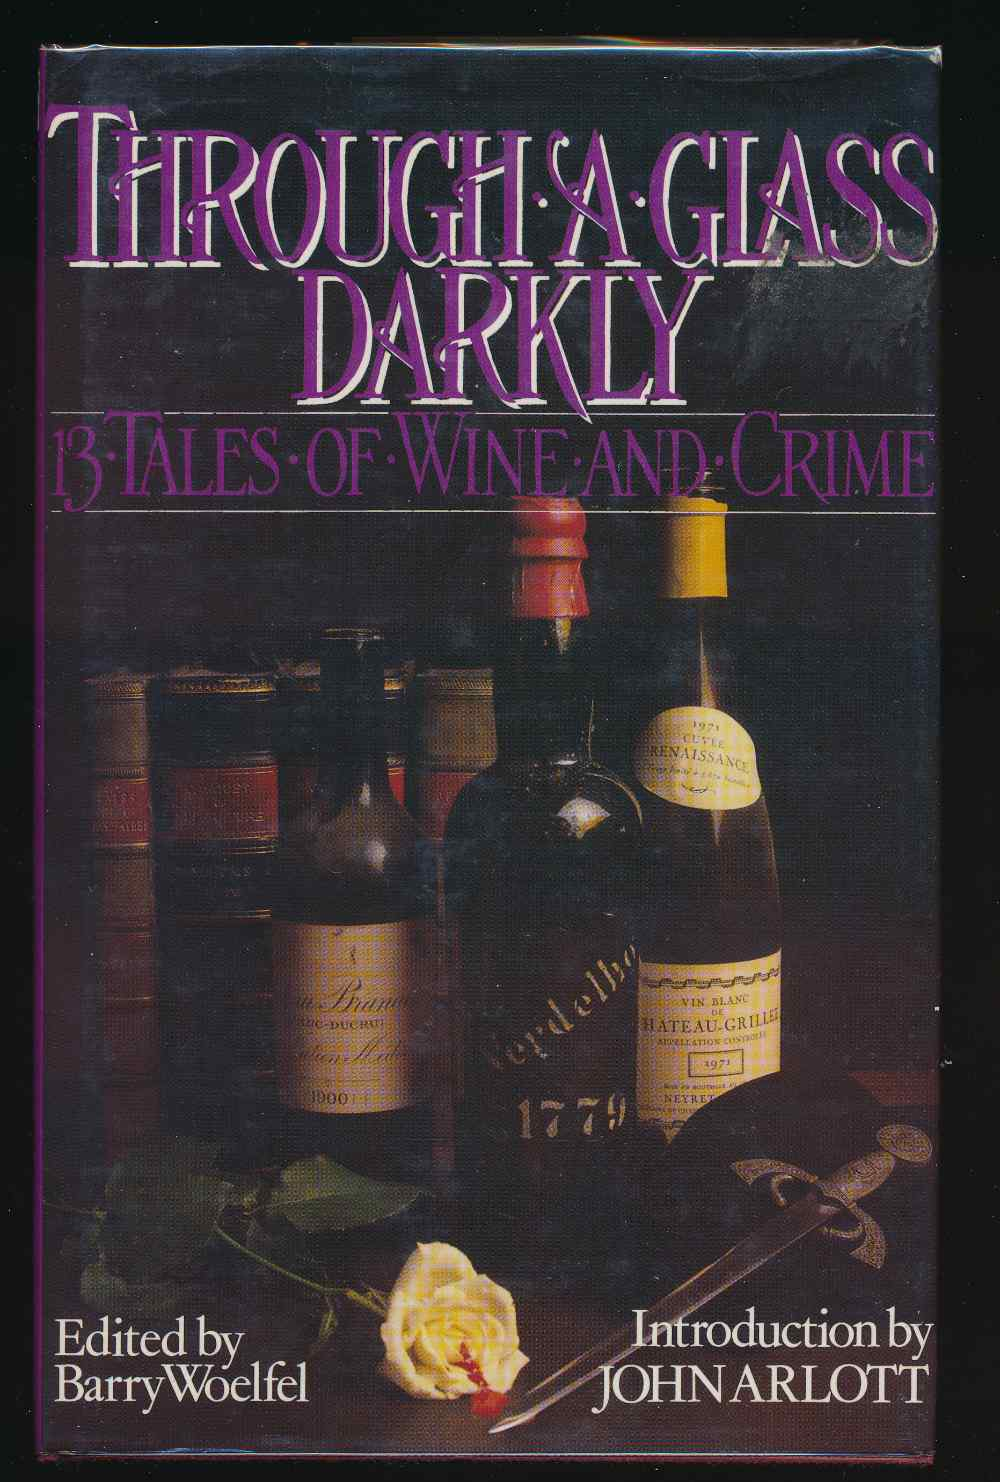 Through a glass darkly : 13 tales of wine and crime